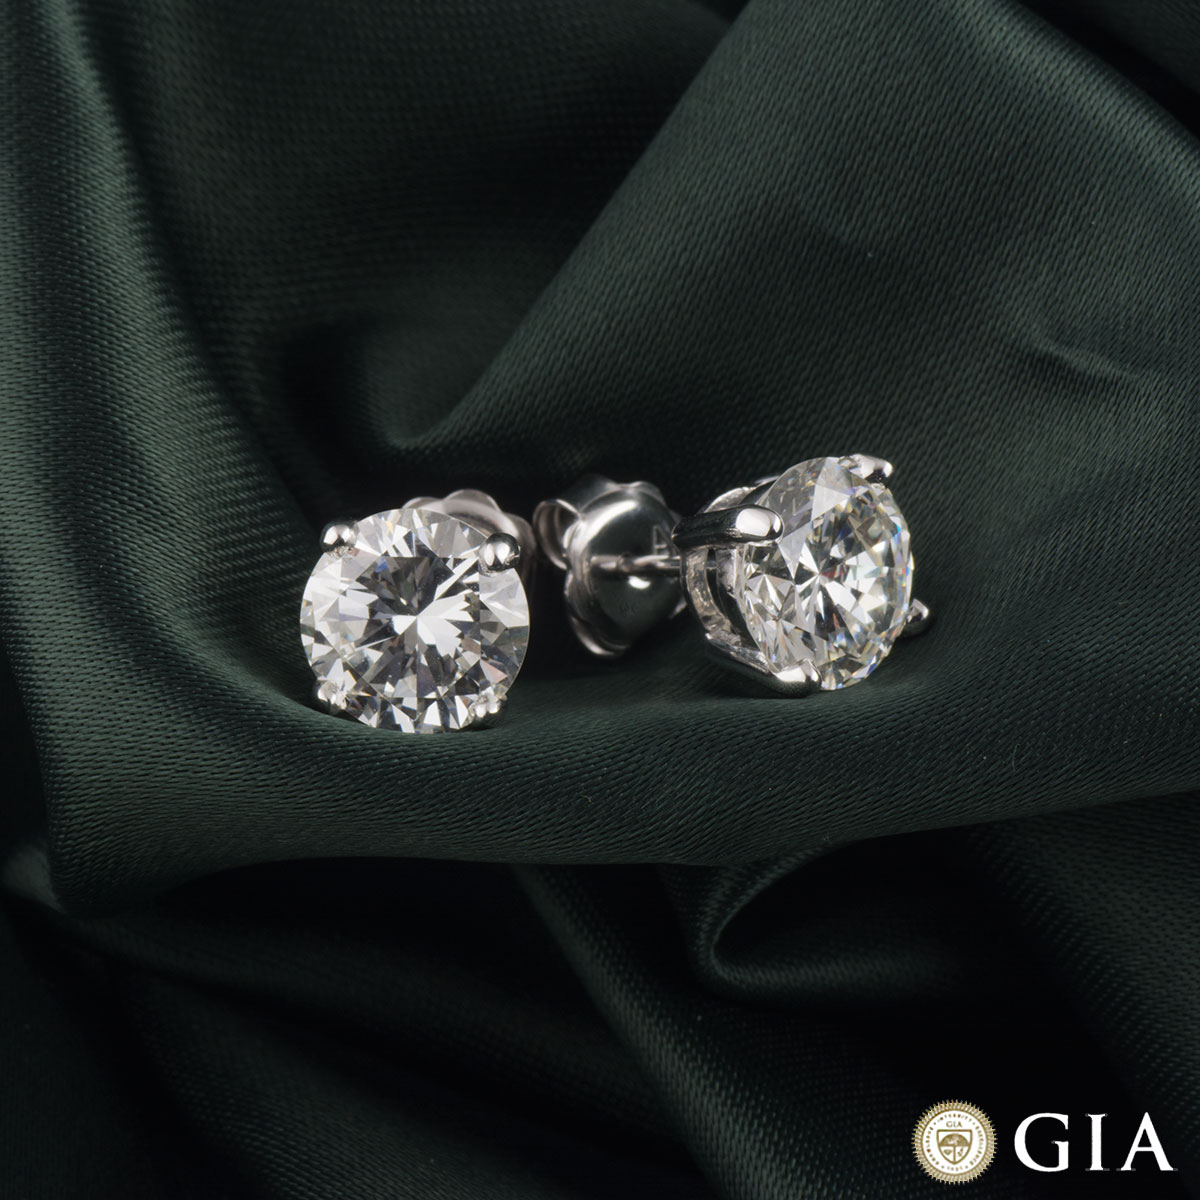 White Gold Diamond Earrings 5.12ct H-I/VVS2-VS1